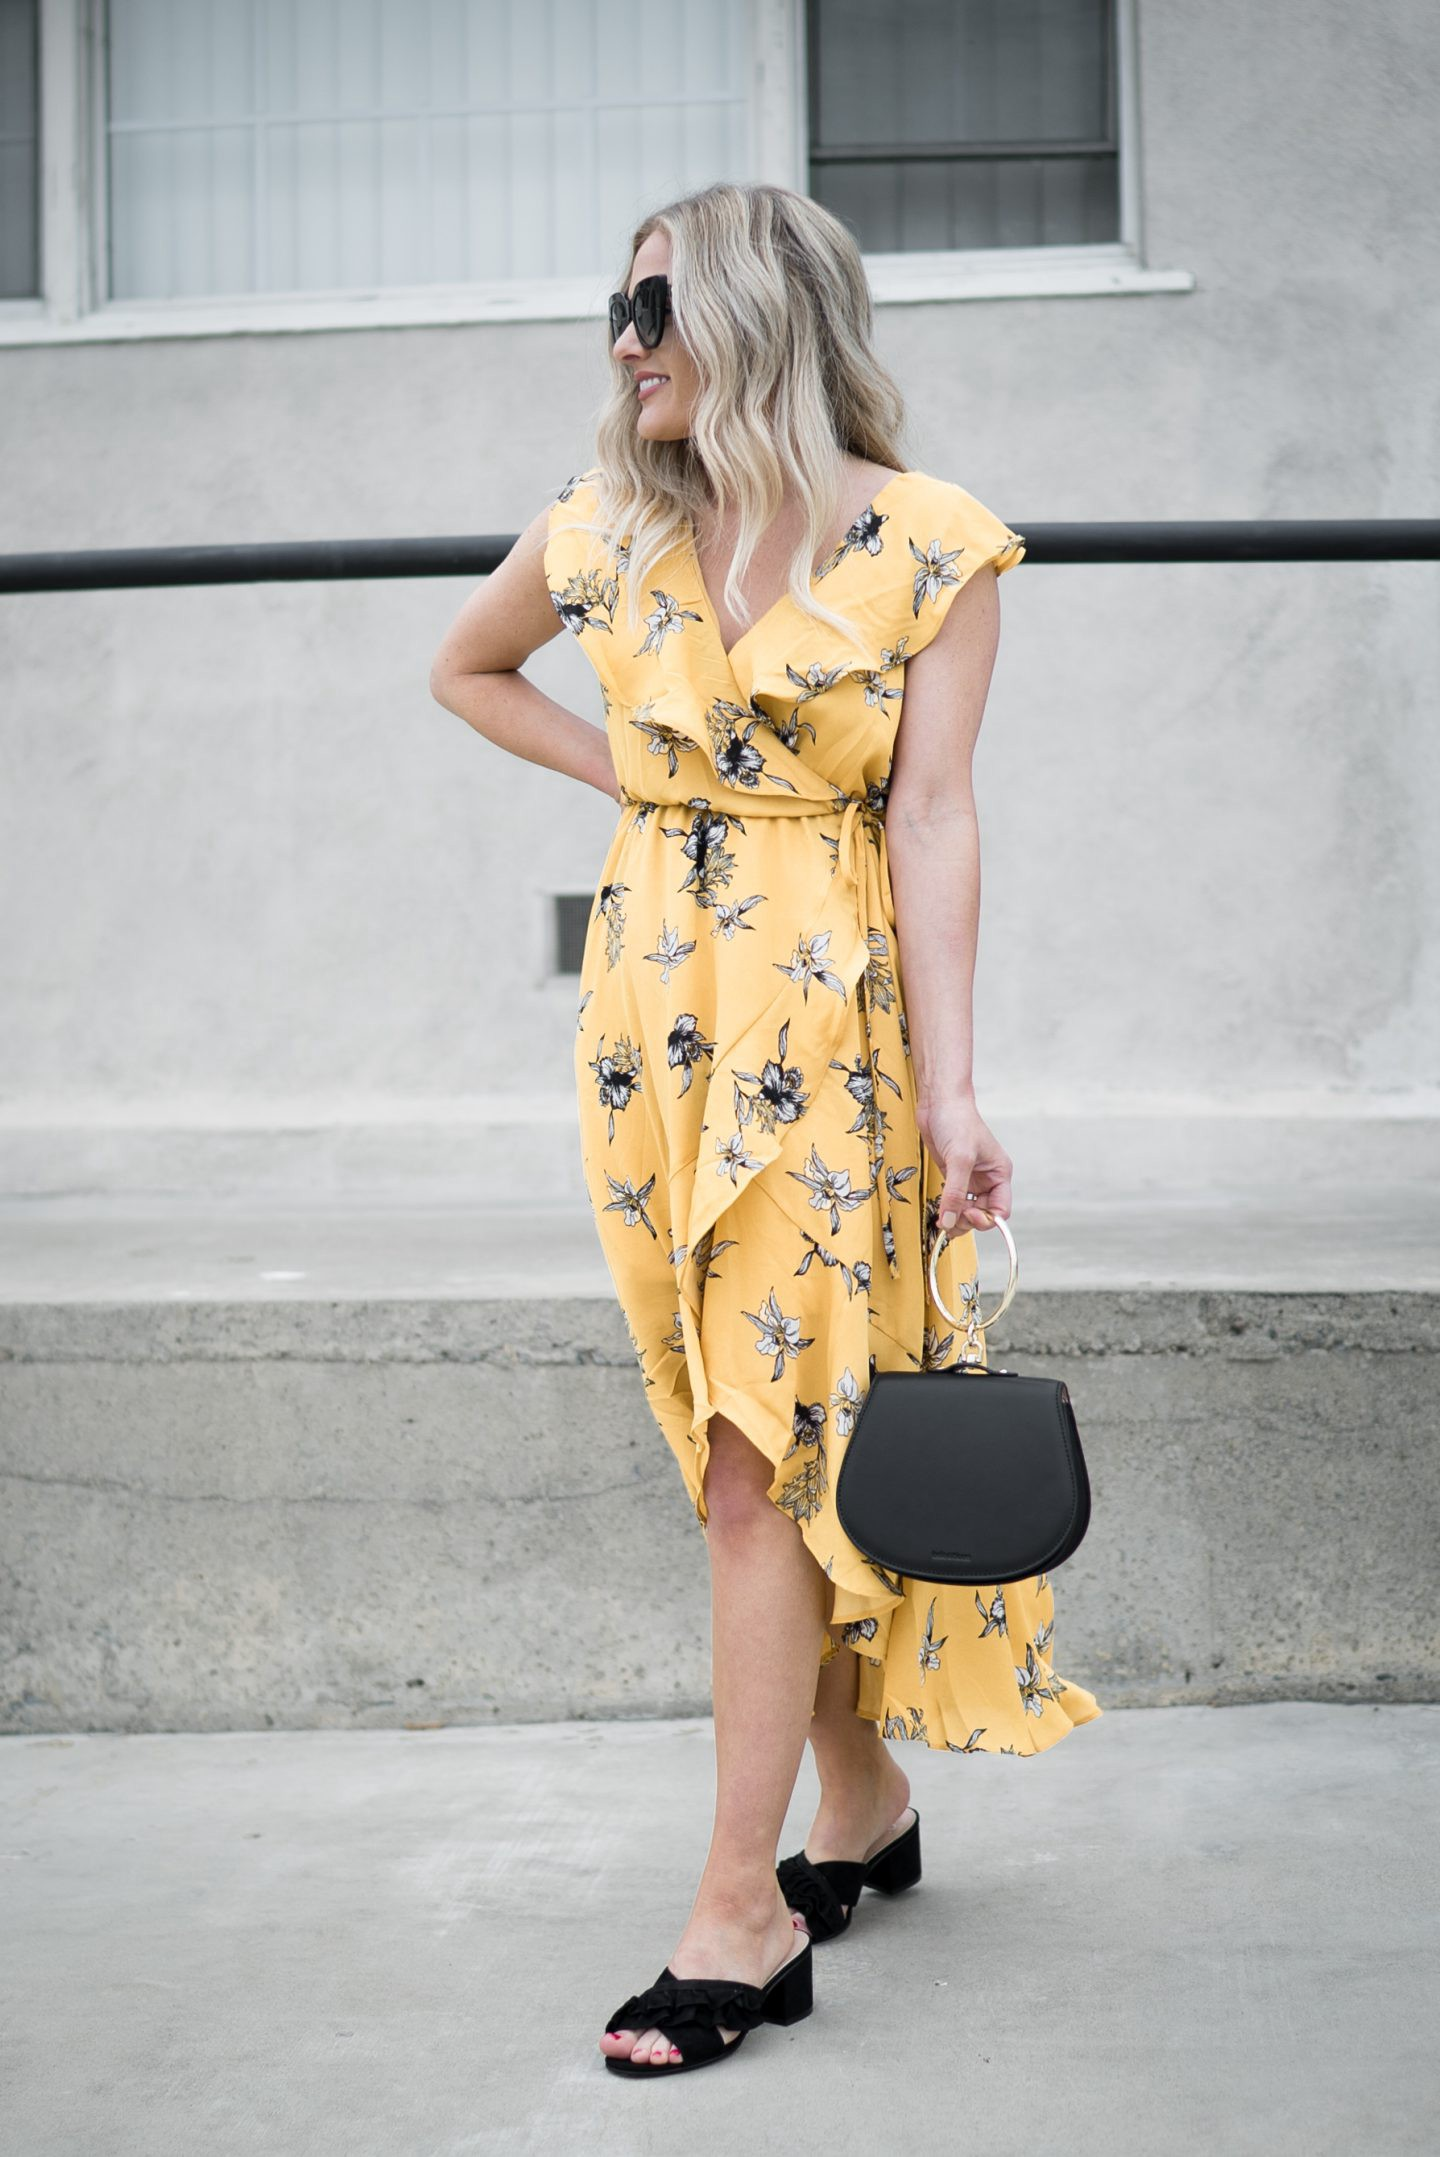 Affordable Spring Fashion by popular Orange County fashion blogger Dress Me Blonde